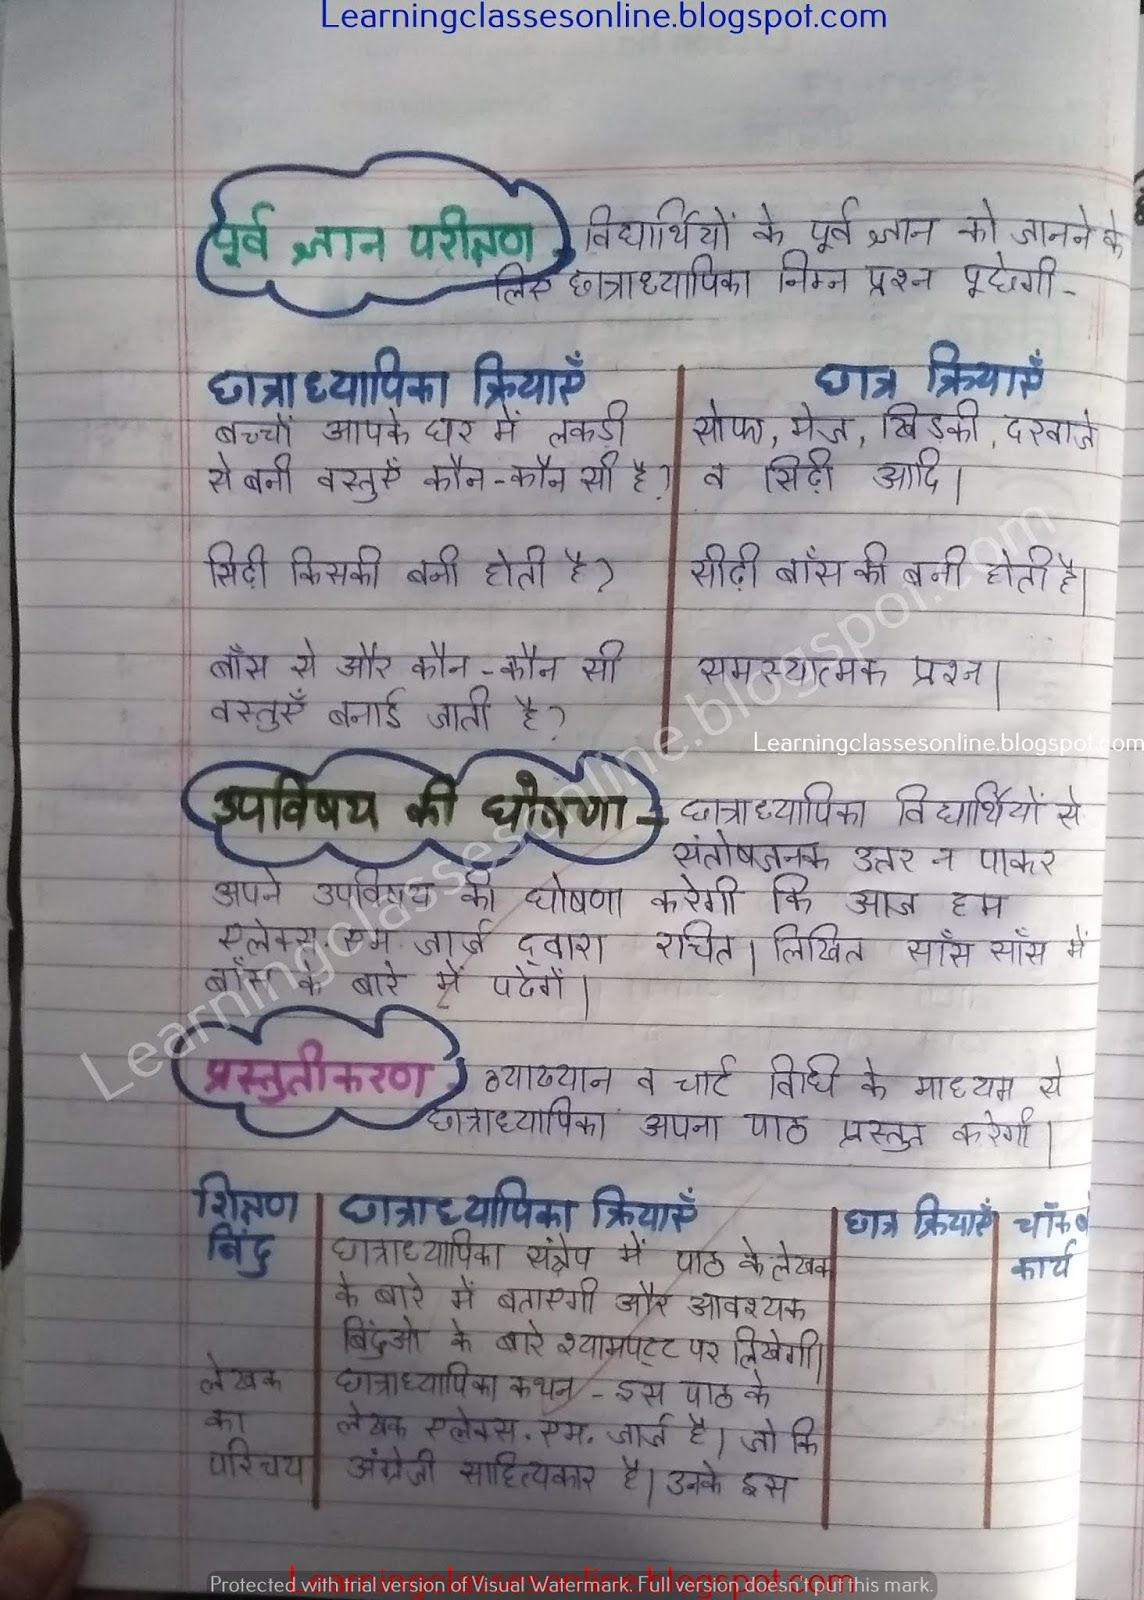 Saans Saans Me Baas Class 6th Hindi Lesson Plan For Bed Deled Btc And Teachers Lesson Plan In Hindi Lesson Plan Pdf Teaching Lessons Plans [ 1600 x 1144 Pixel ]